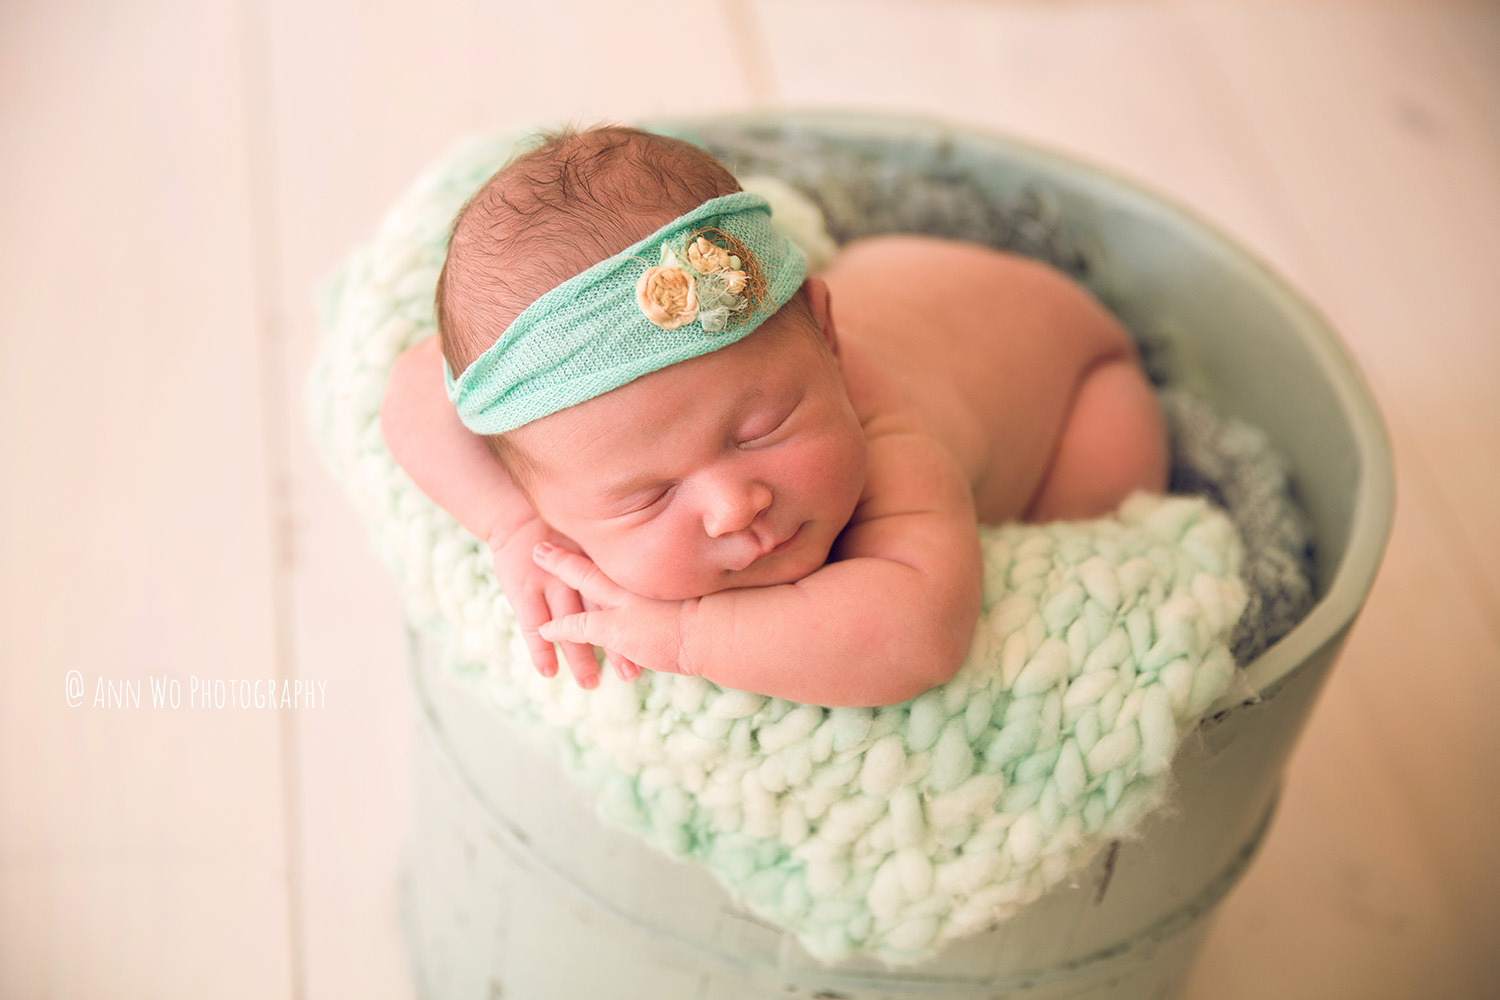 Newborn photography in London by Ann Wo mint bucket